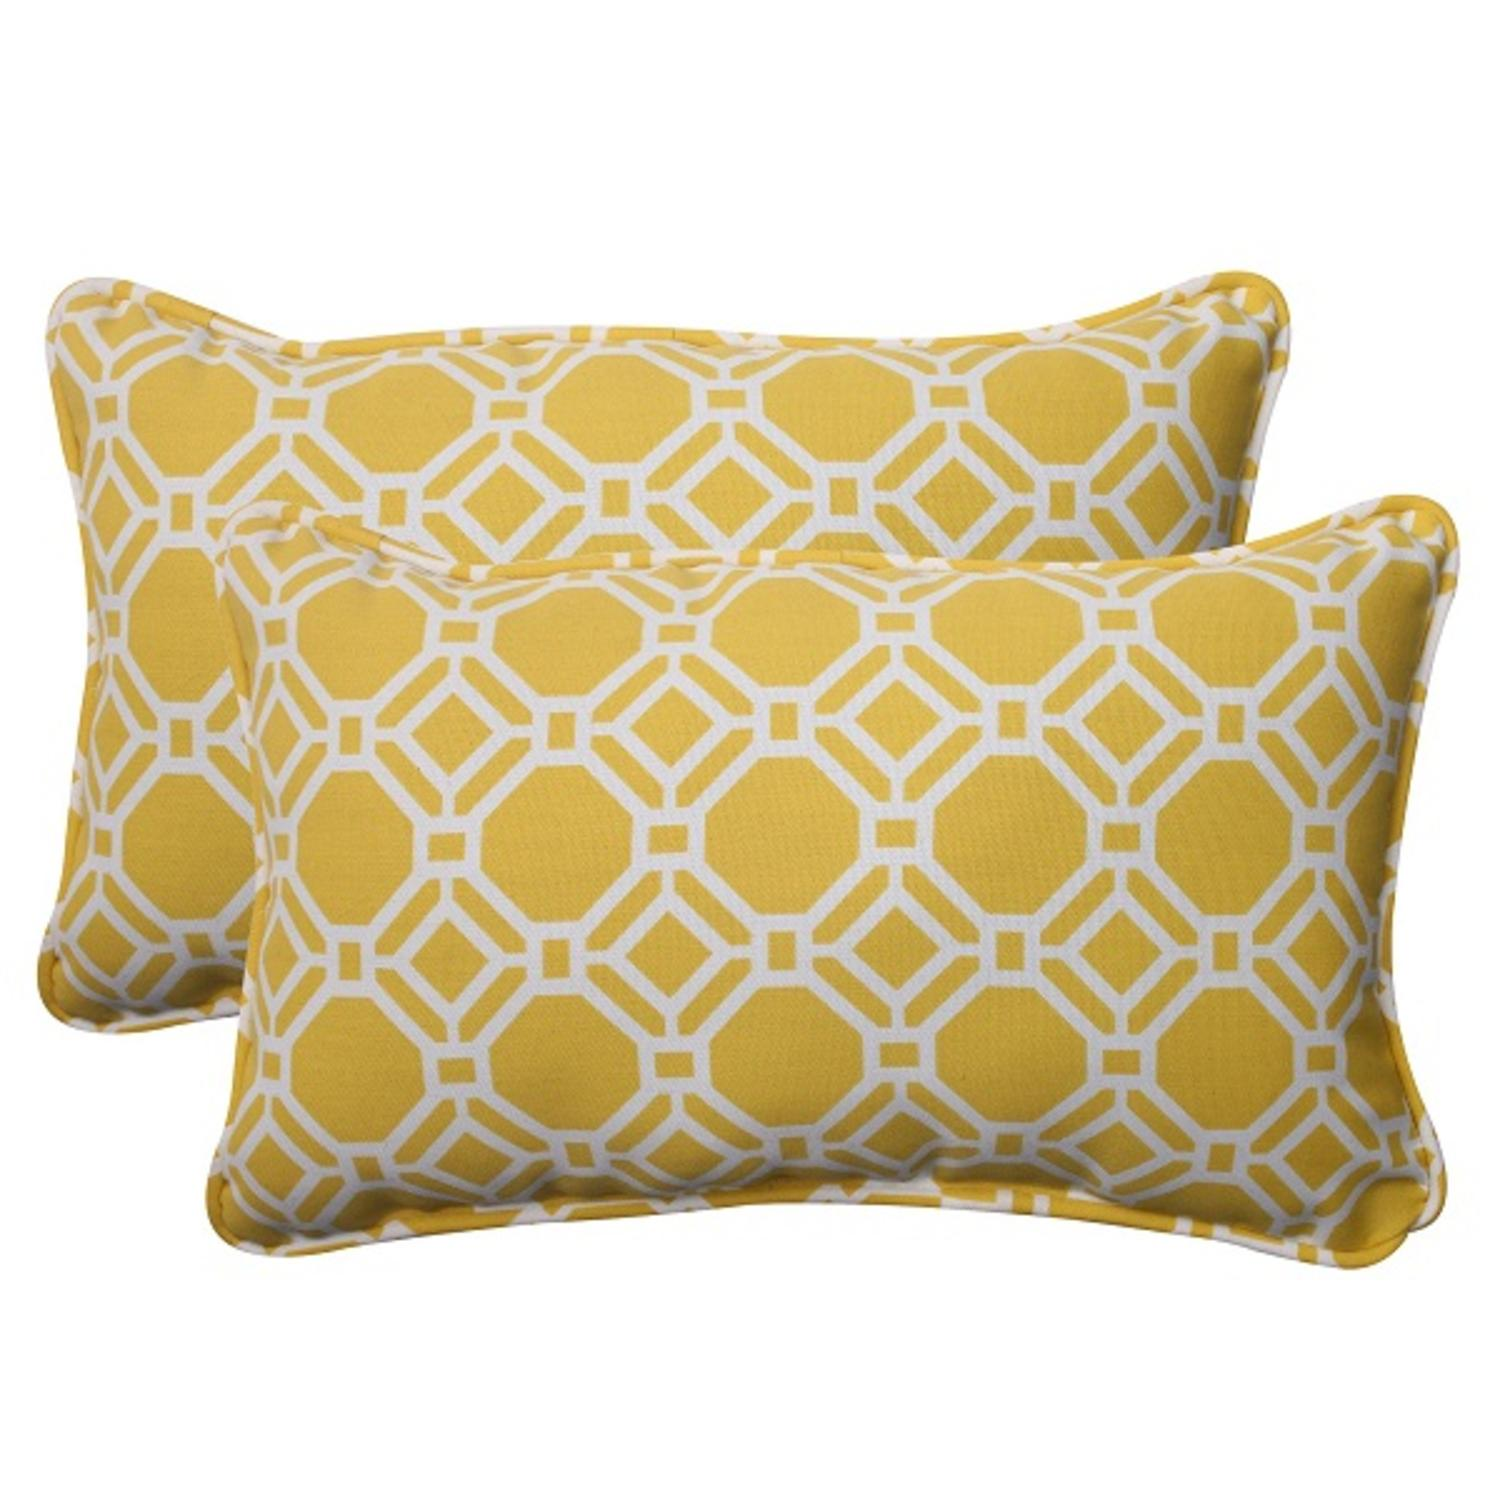 Set of 2 Sunny Yellow and White Geometric Outdoor Patio Throw Pillows 18.5""